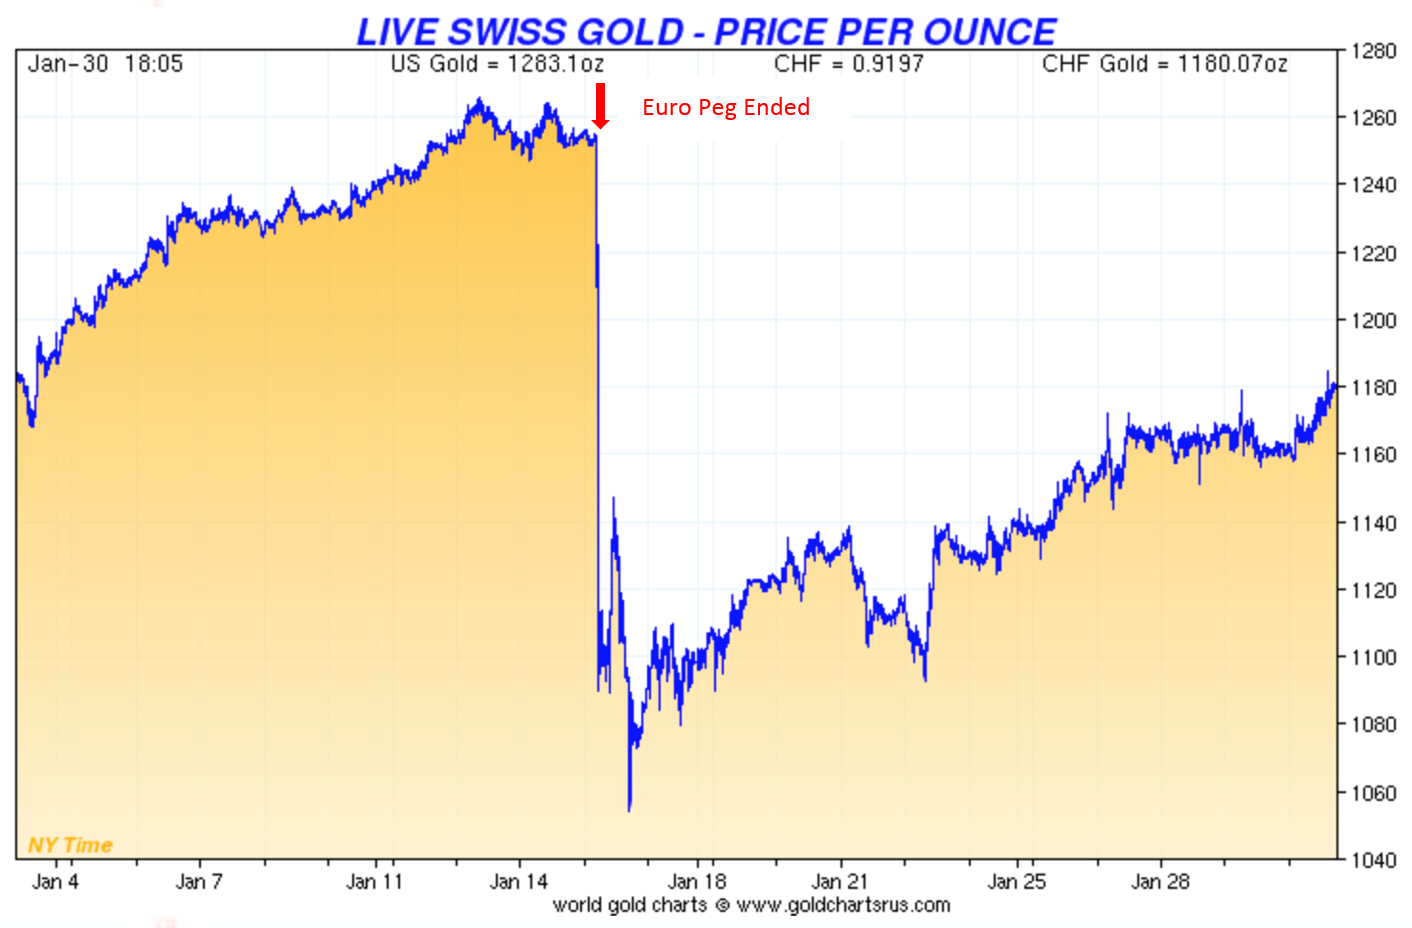 Price of Gold in Swiss Francs at the End of the Peg